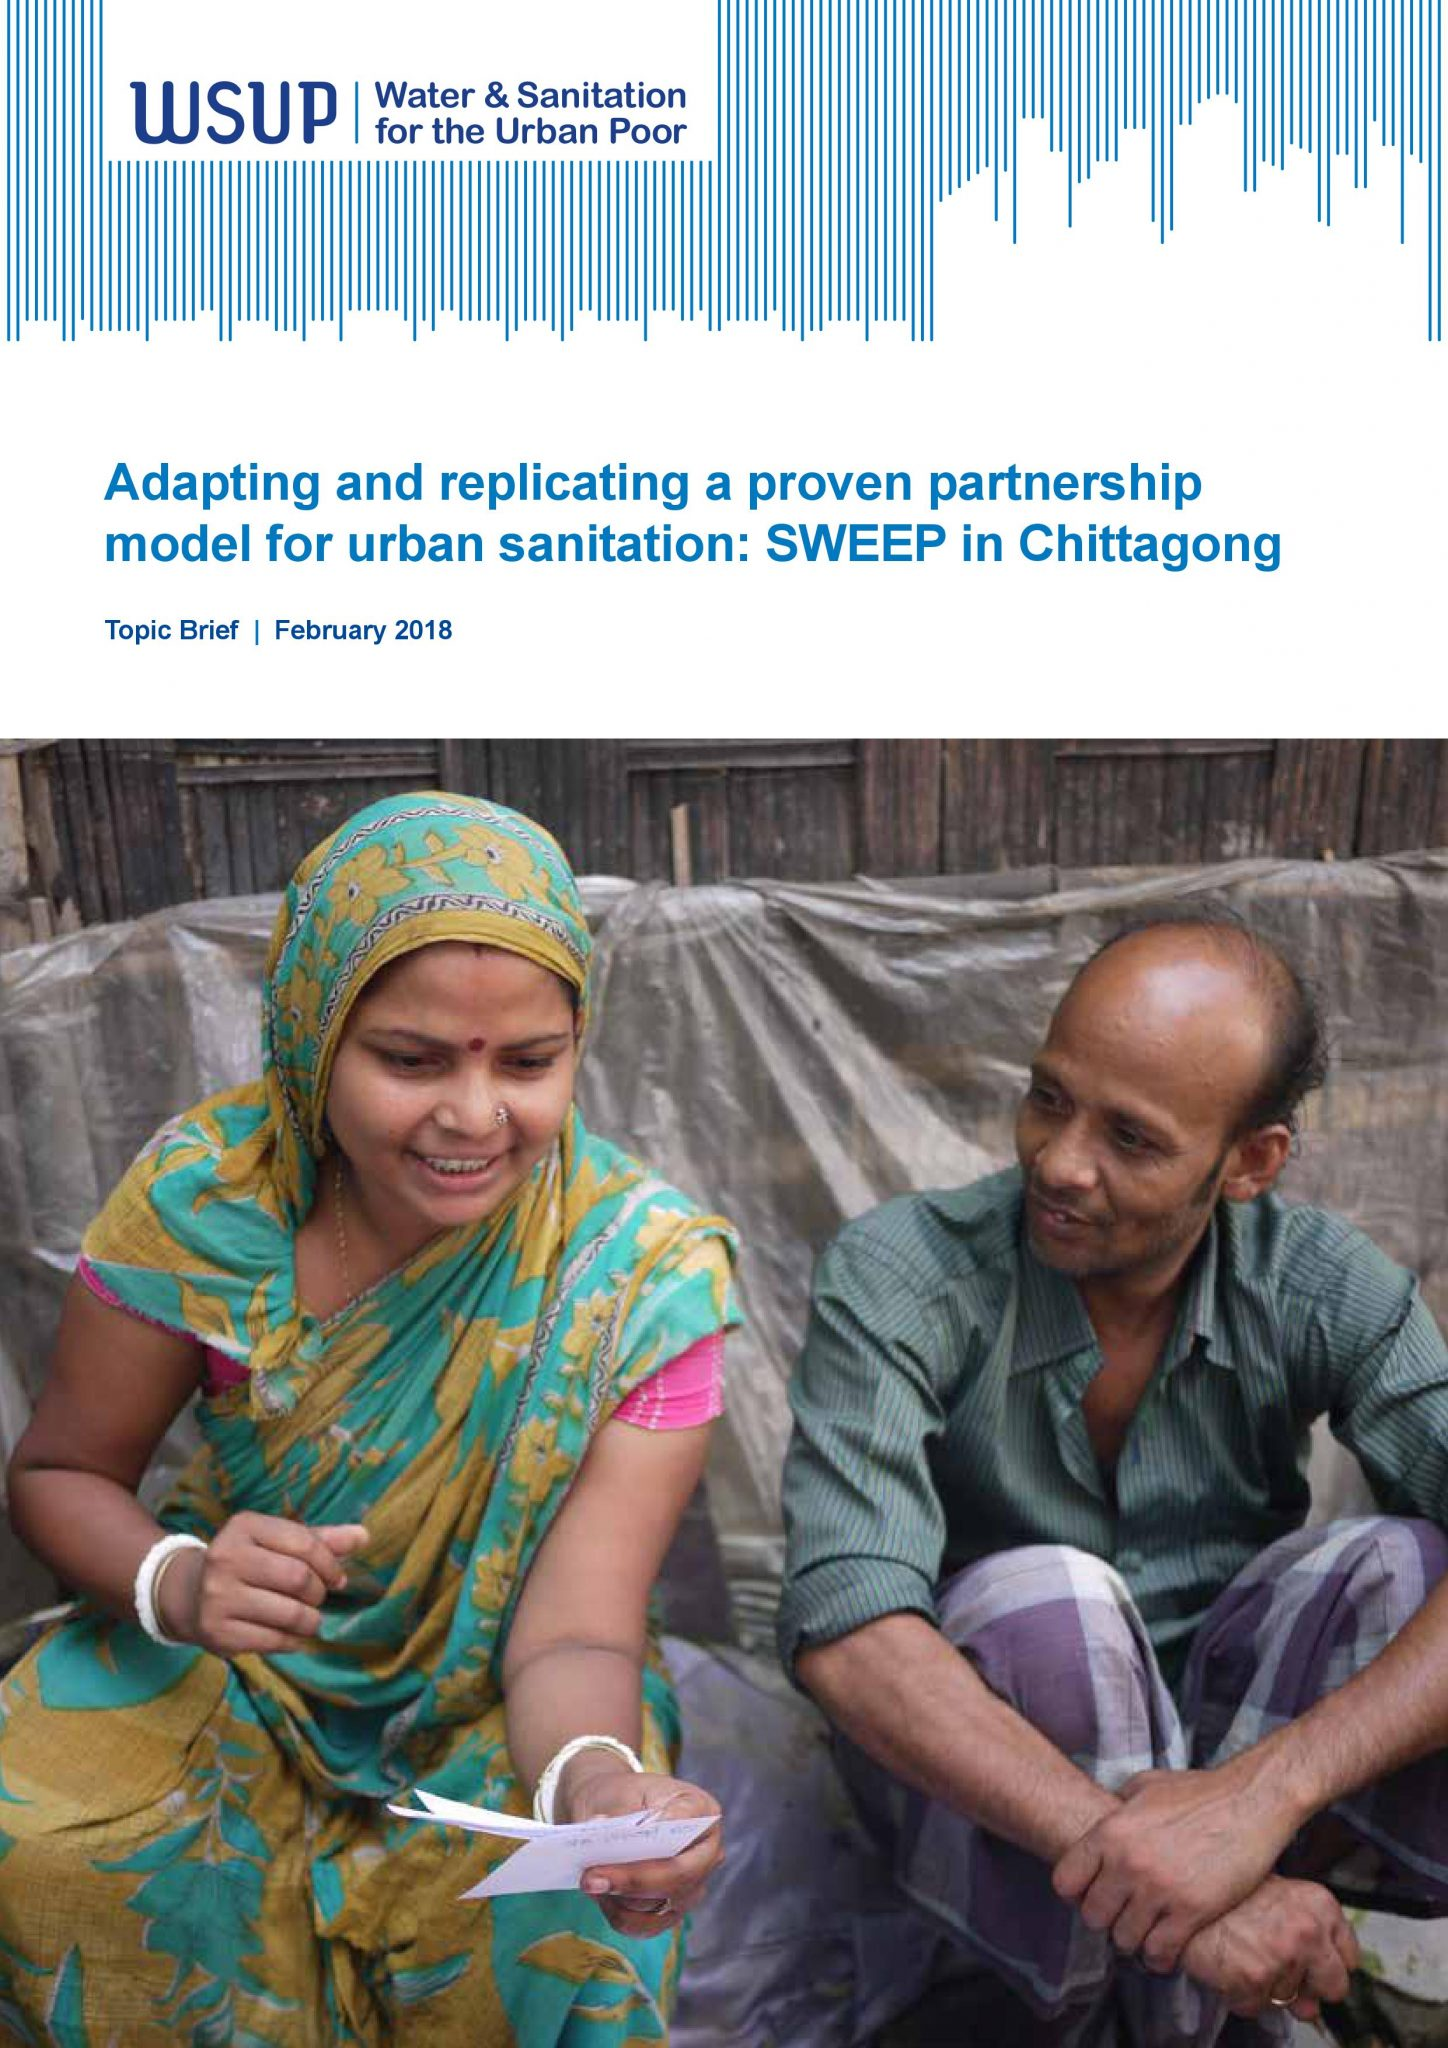 Adapting and replicating a proven partnership model for urban sanitation SWEEP in Chittagong